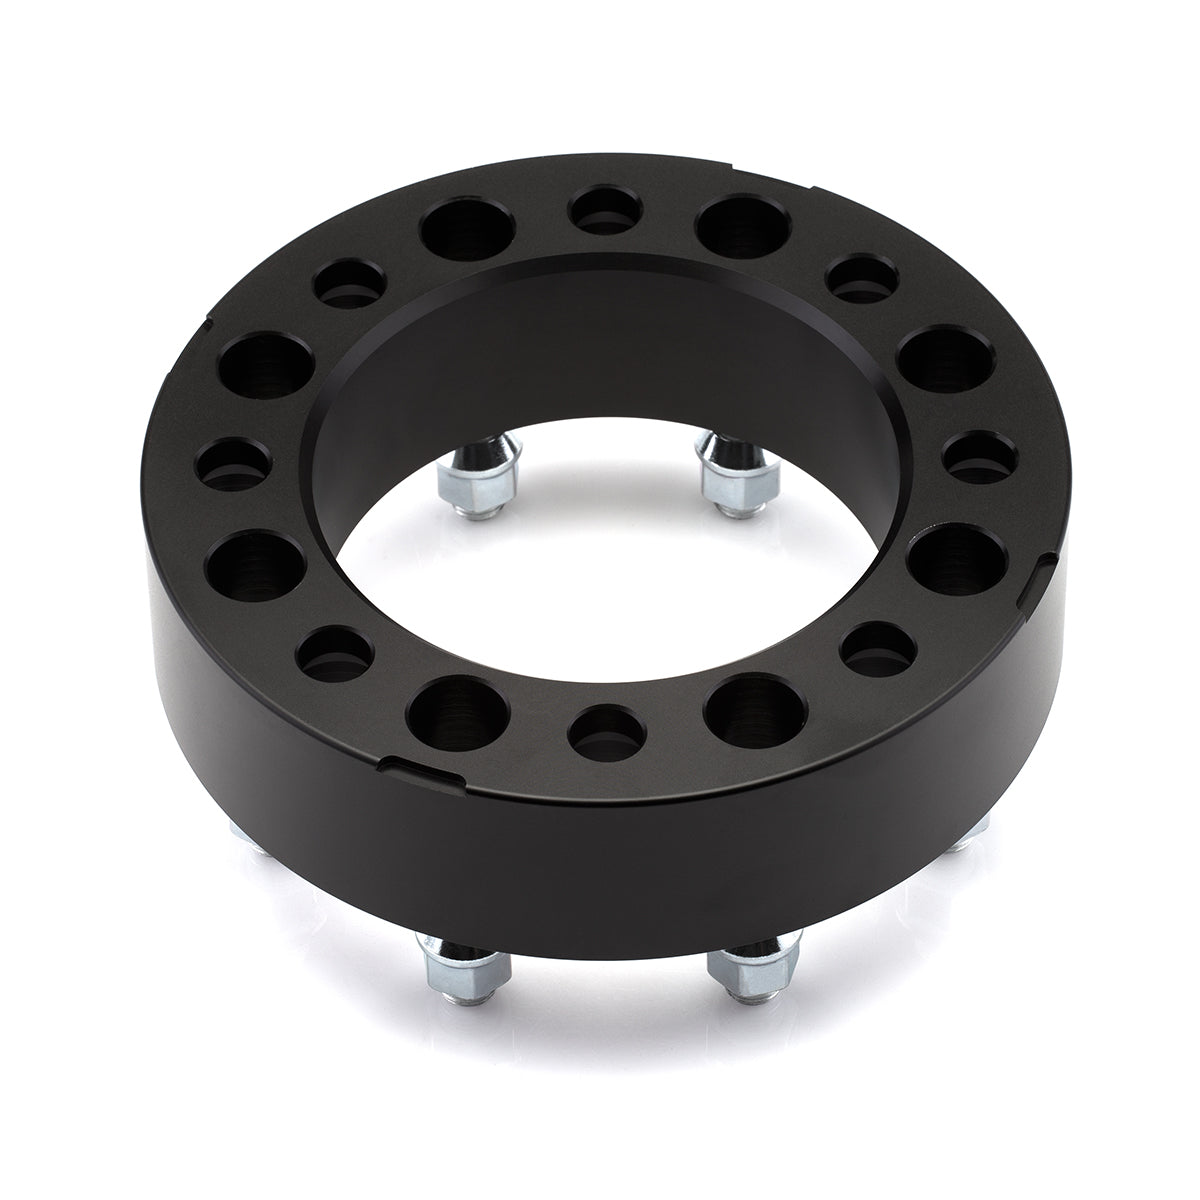 2000-2010 Chevy Silverado 2500HD Lug-Centric Wheel Spacer (4pc)